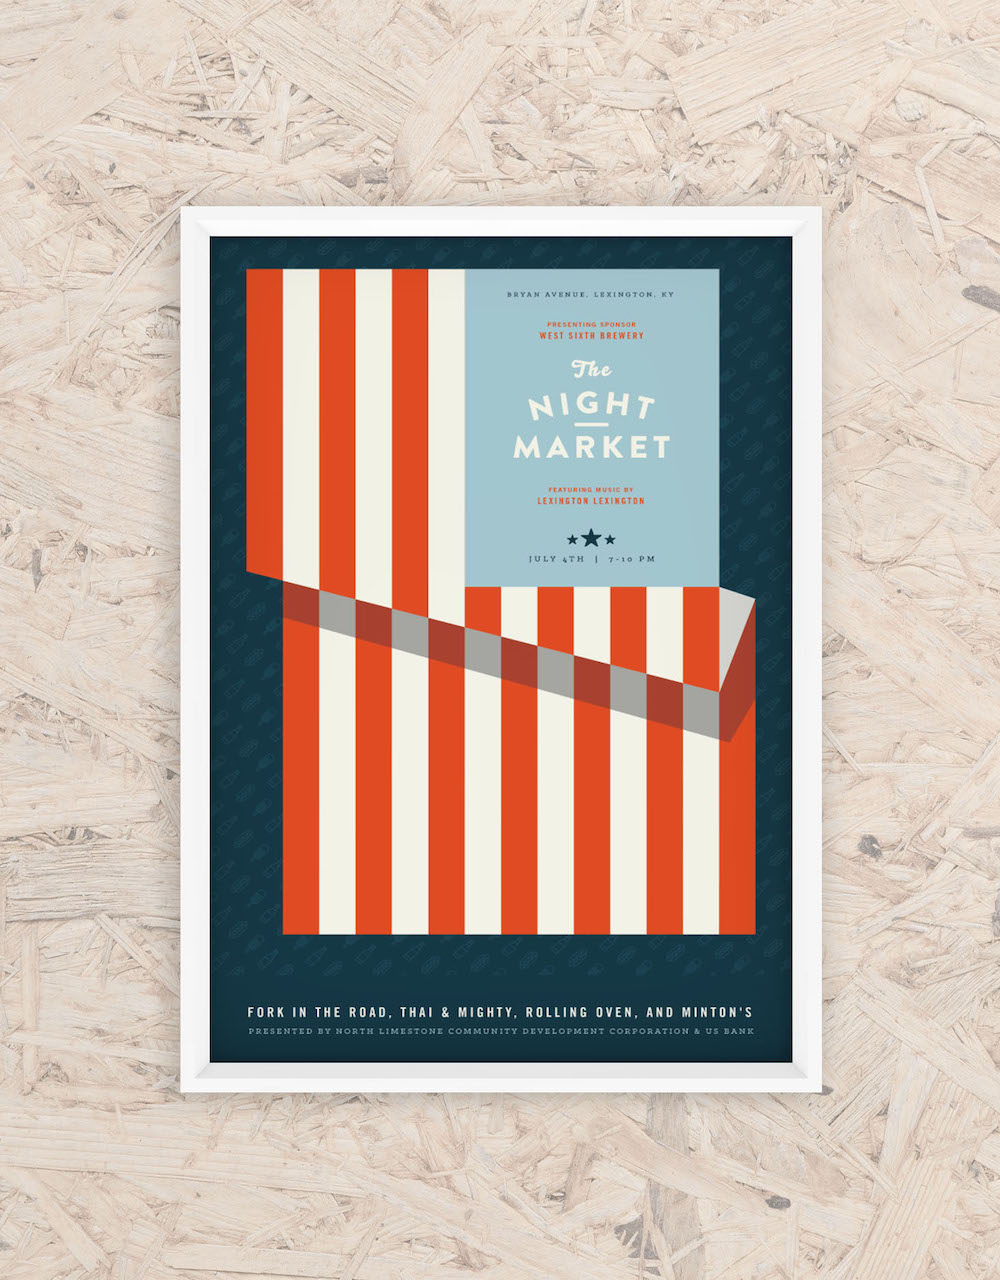 Summer Market Creative Event Poster Idea